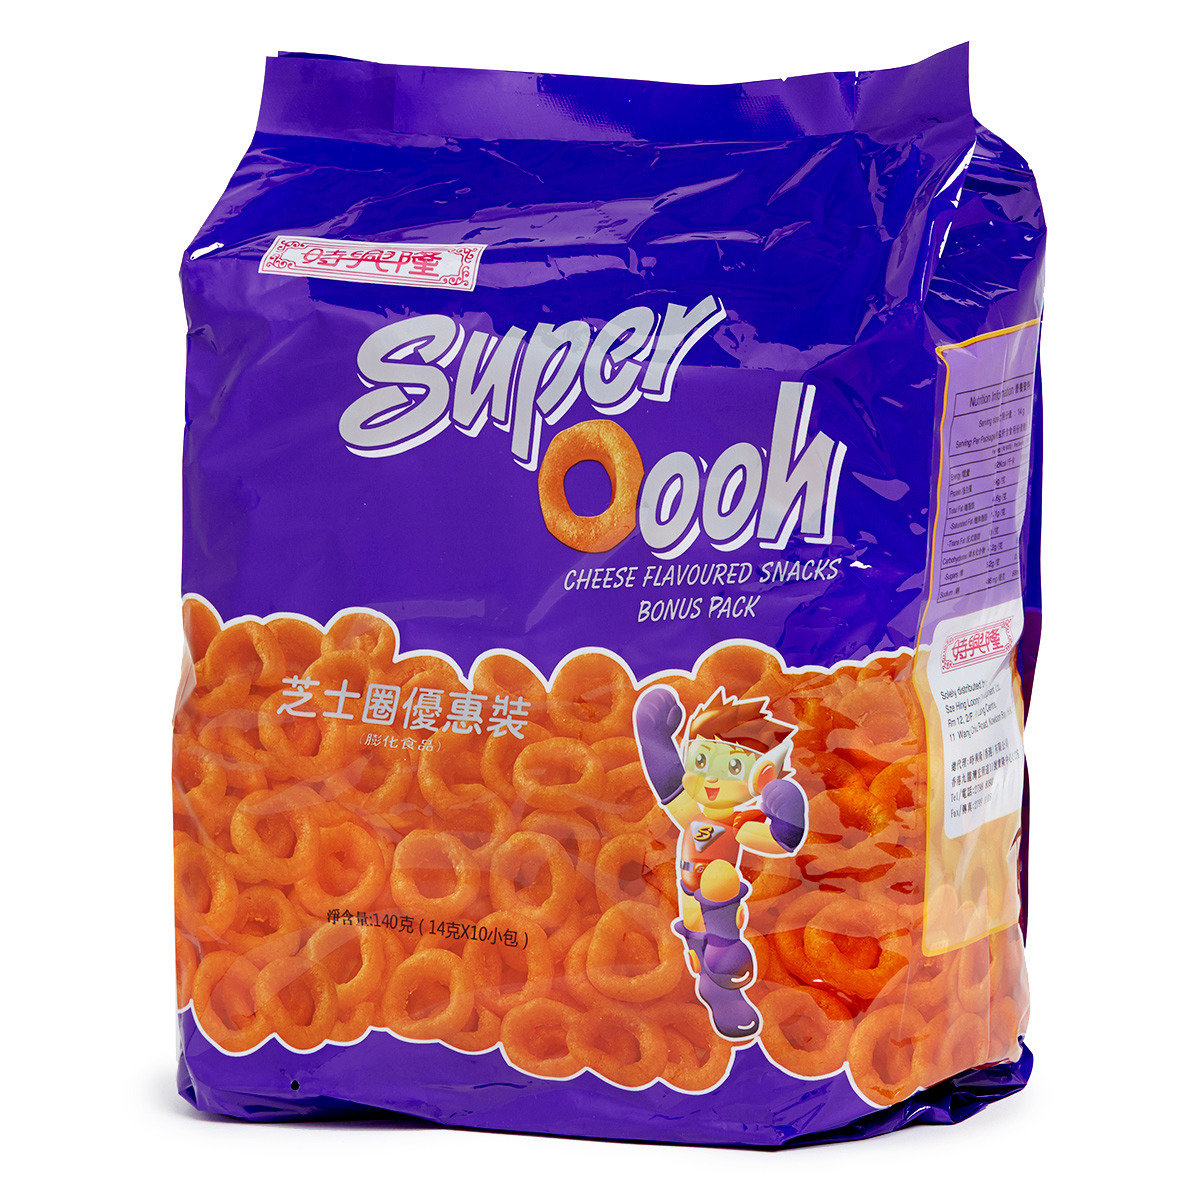 Super Oooh Cheese Flavoured Snack